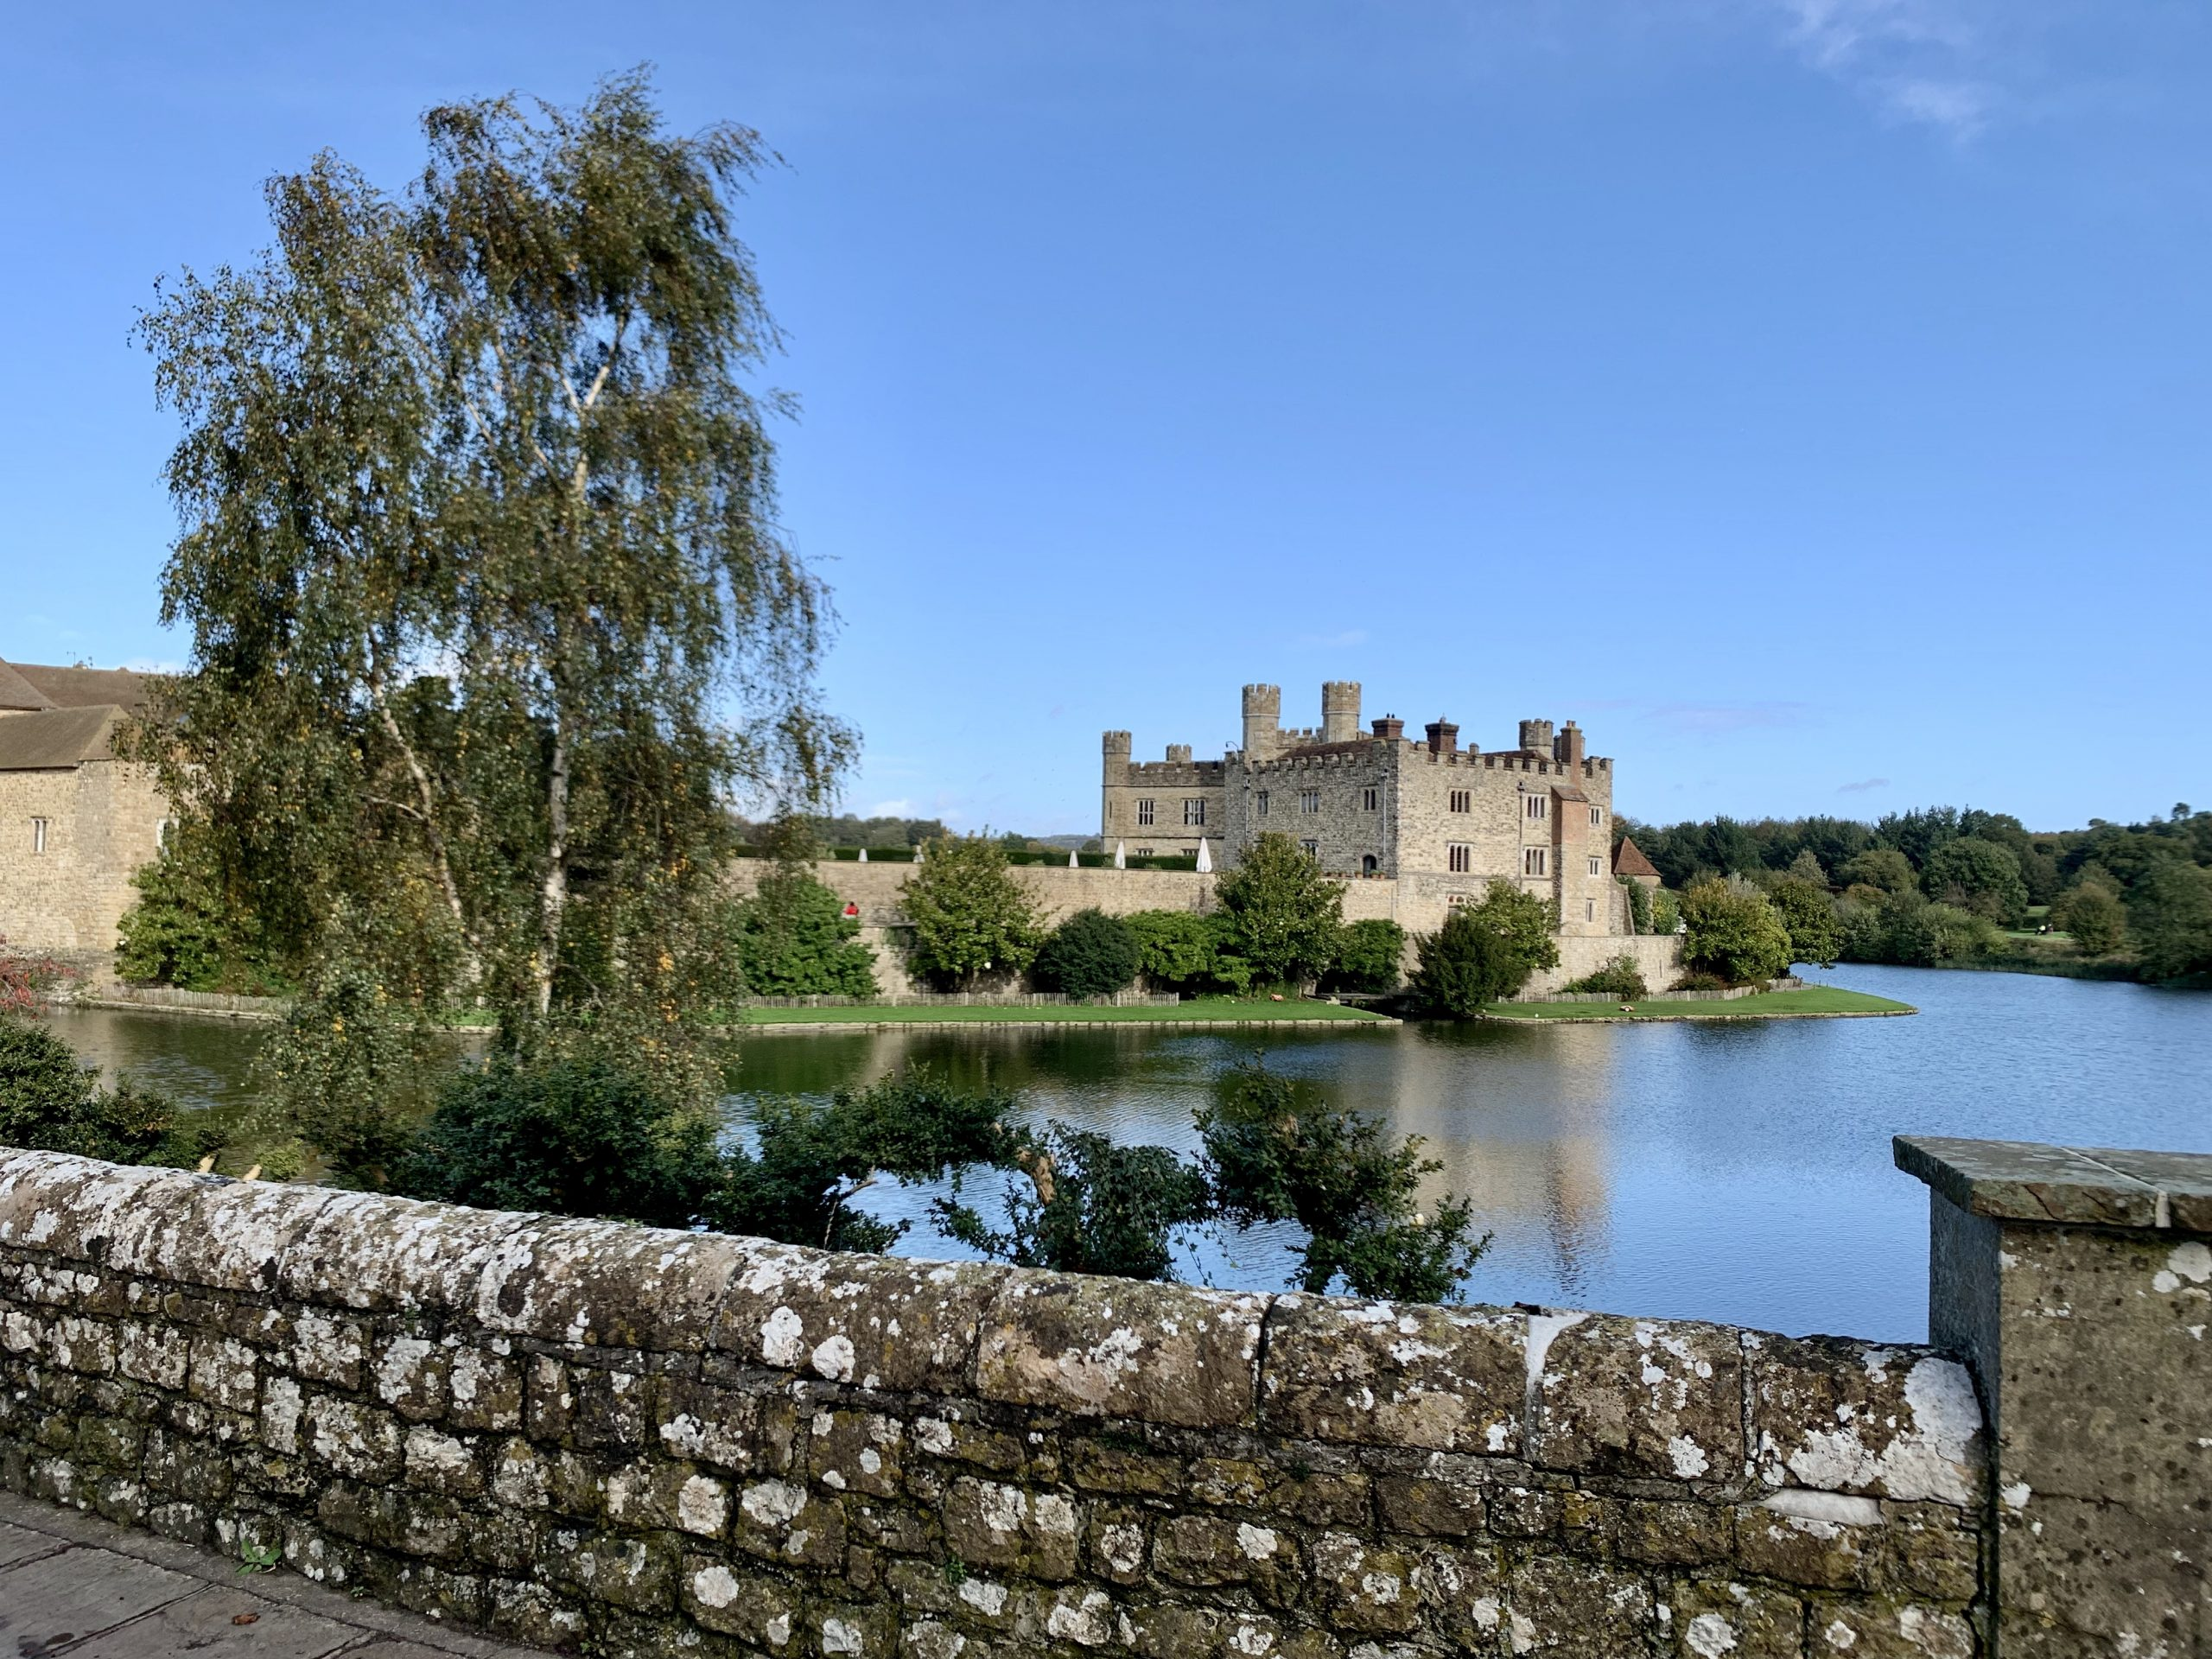 Leeds Castle with a lake and a wall in front